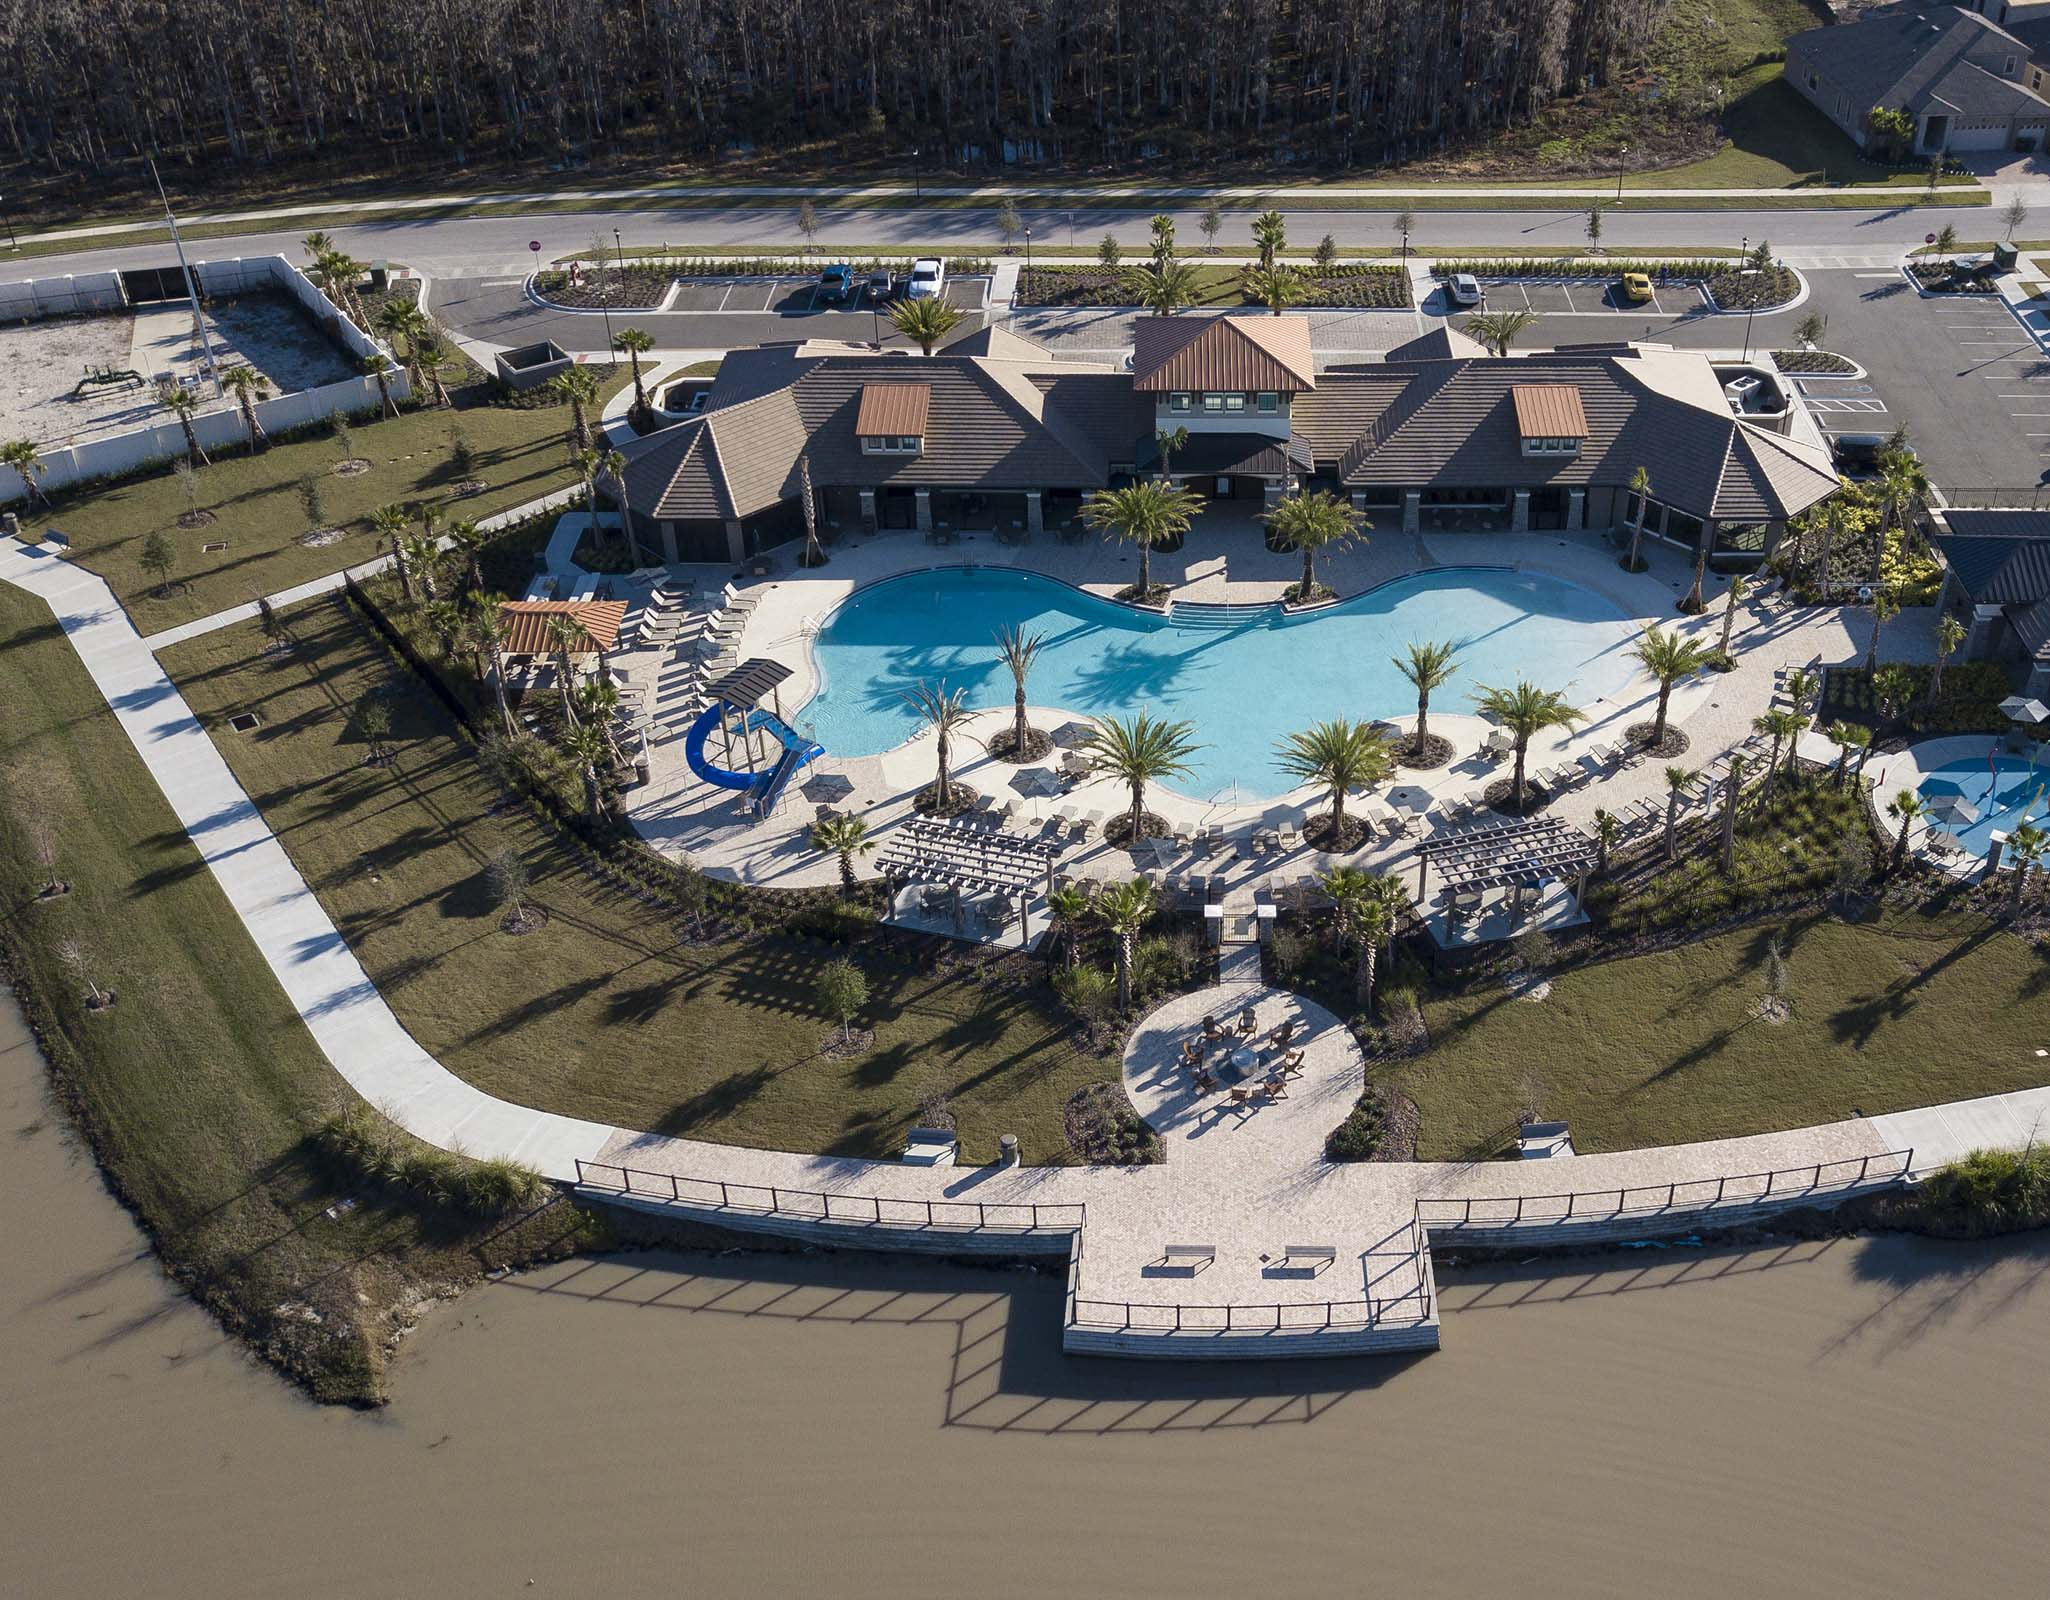 Tapestry WaterFeatures in Kissimmee Florida by Mattamy Homes